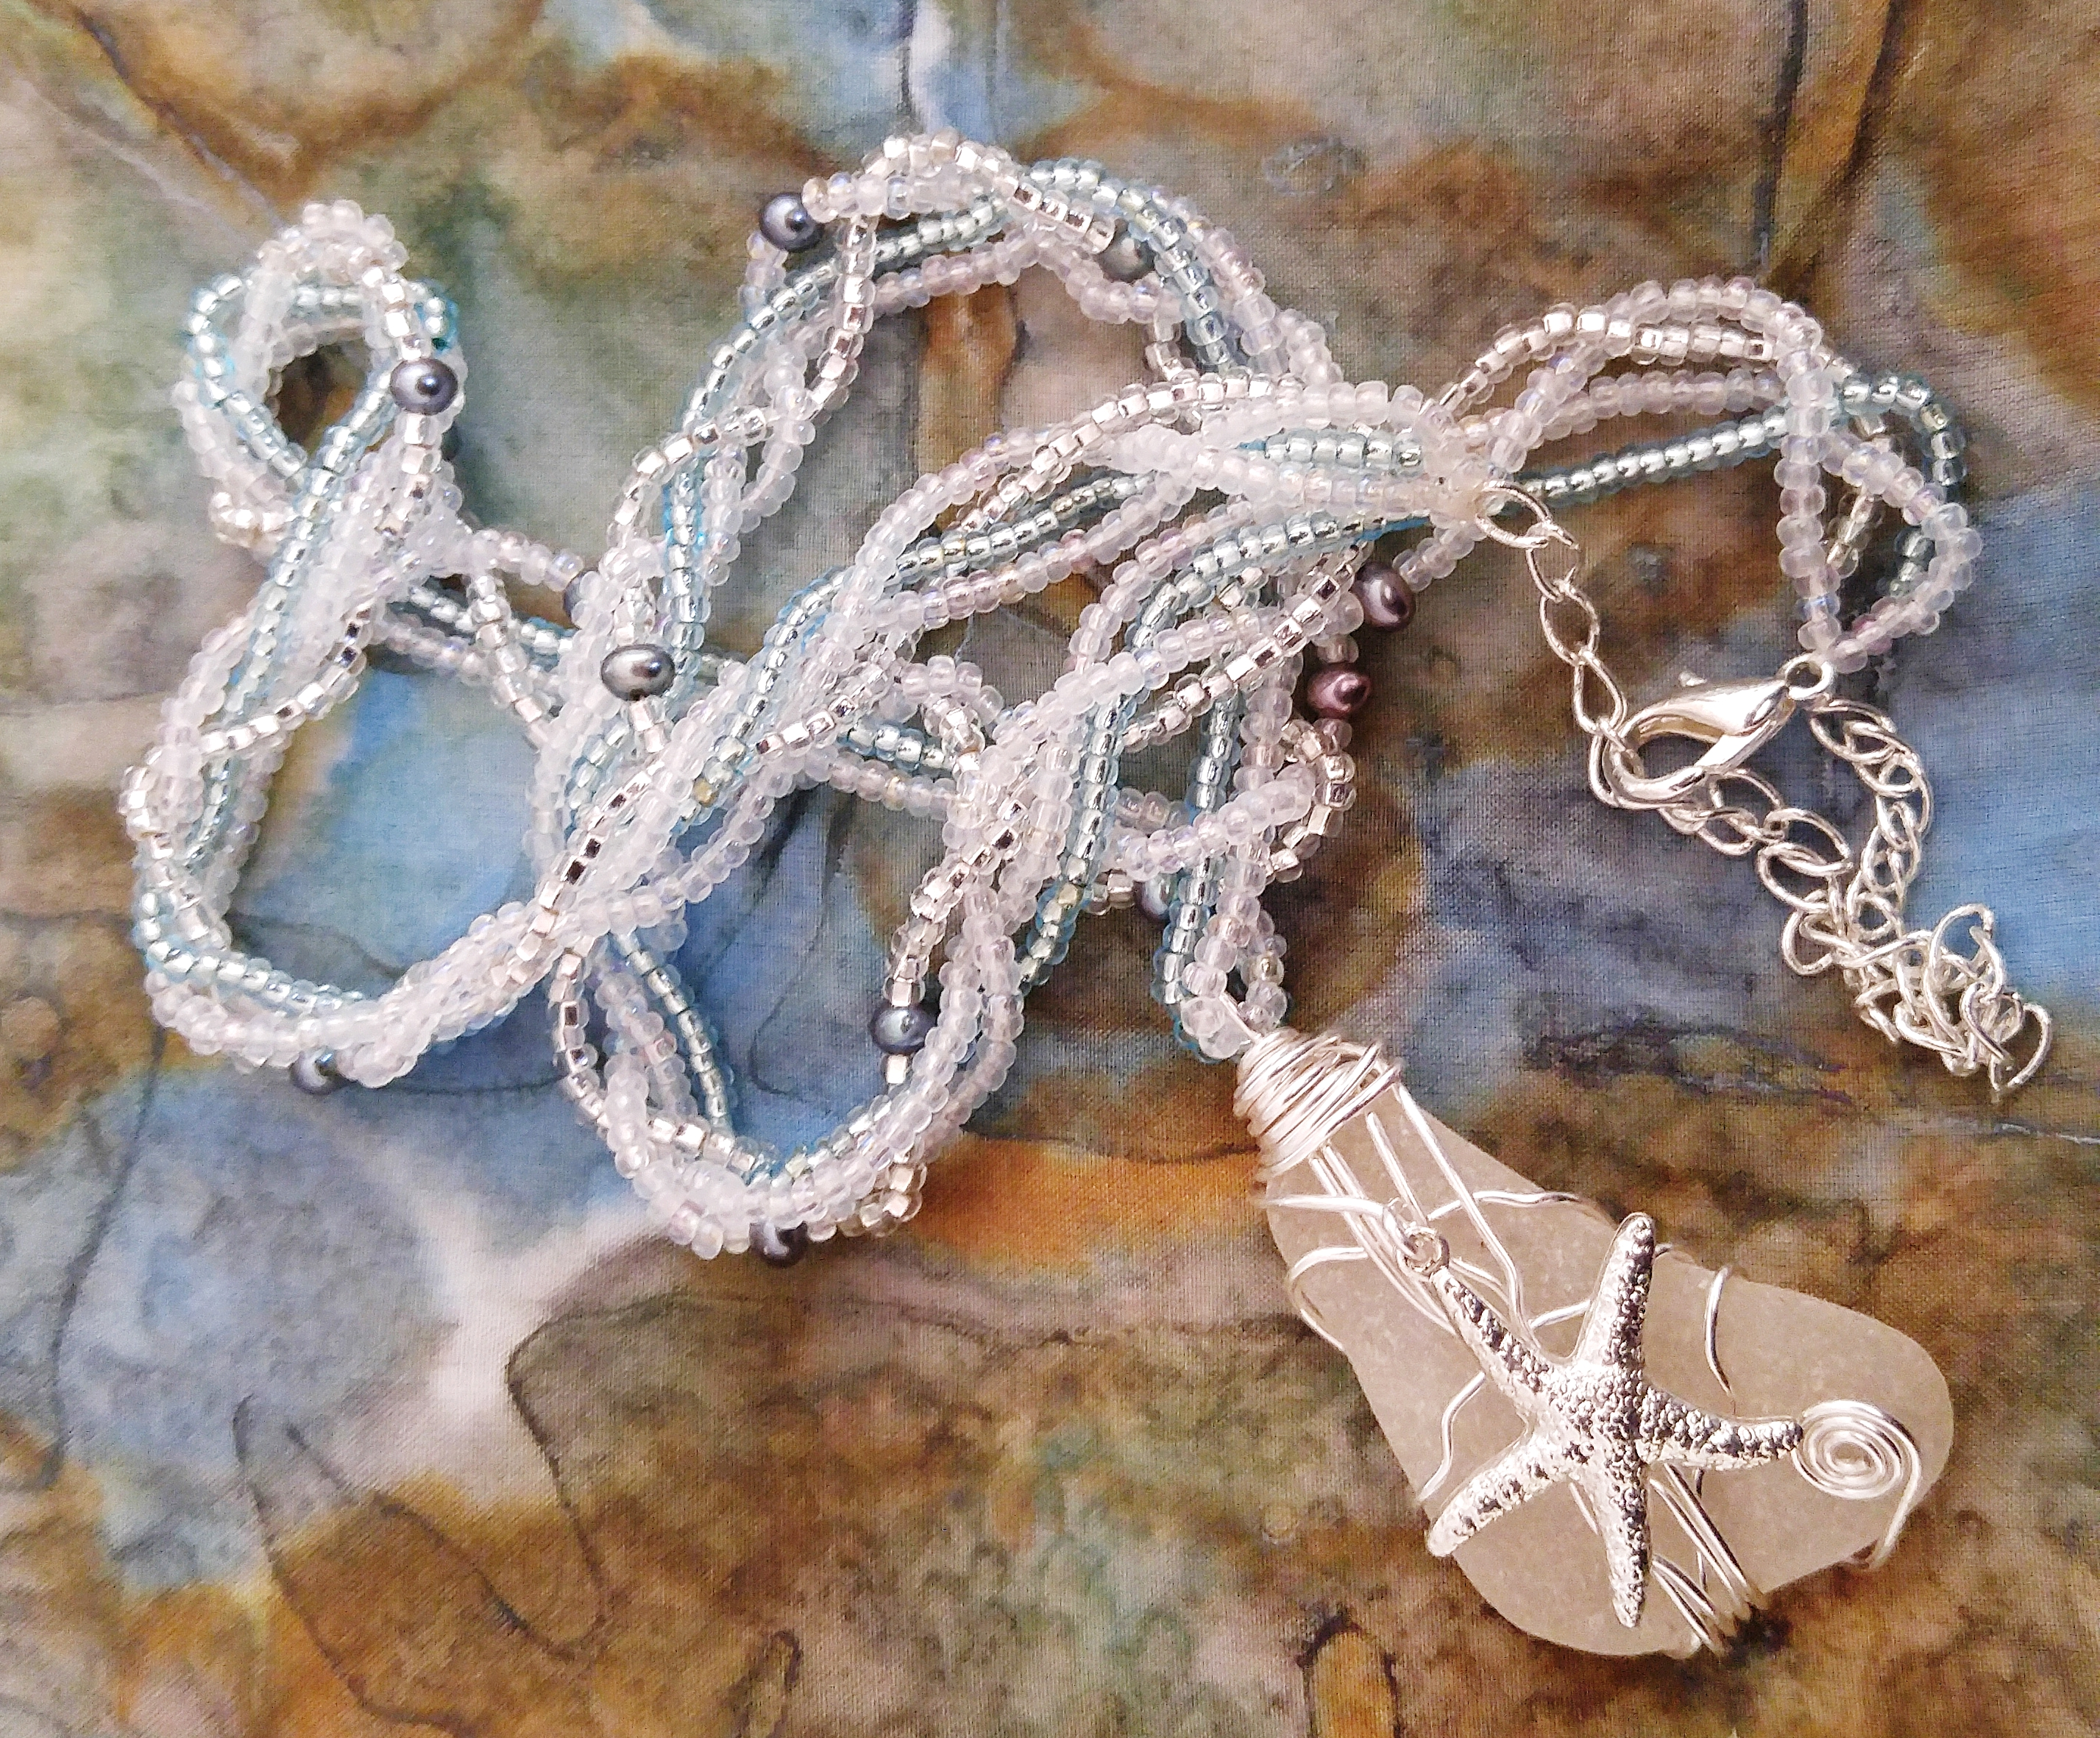 Sea star pendant with braided chain